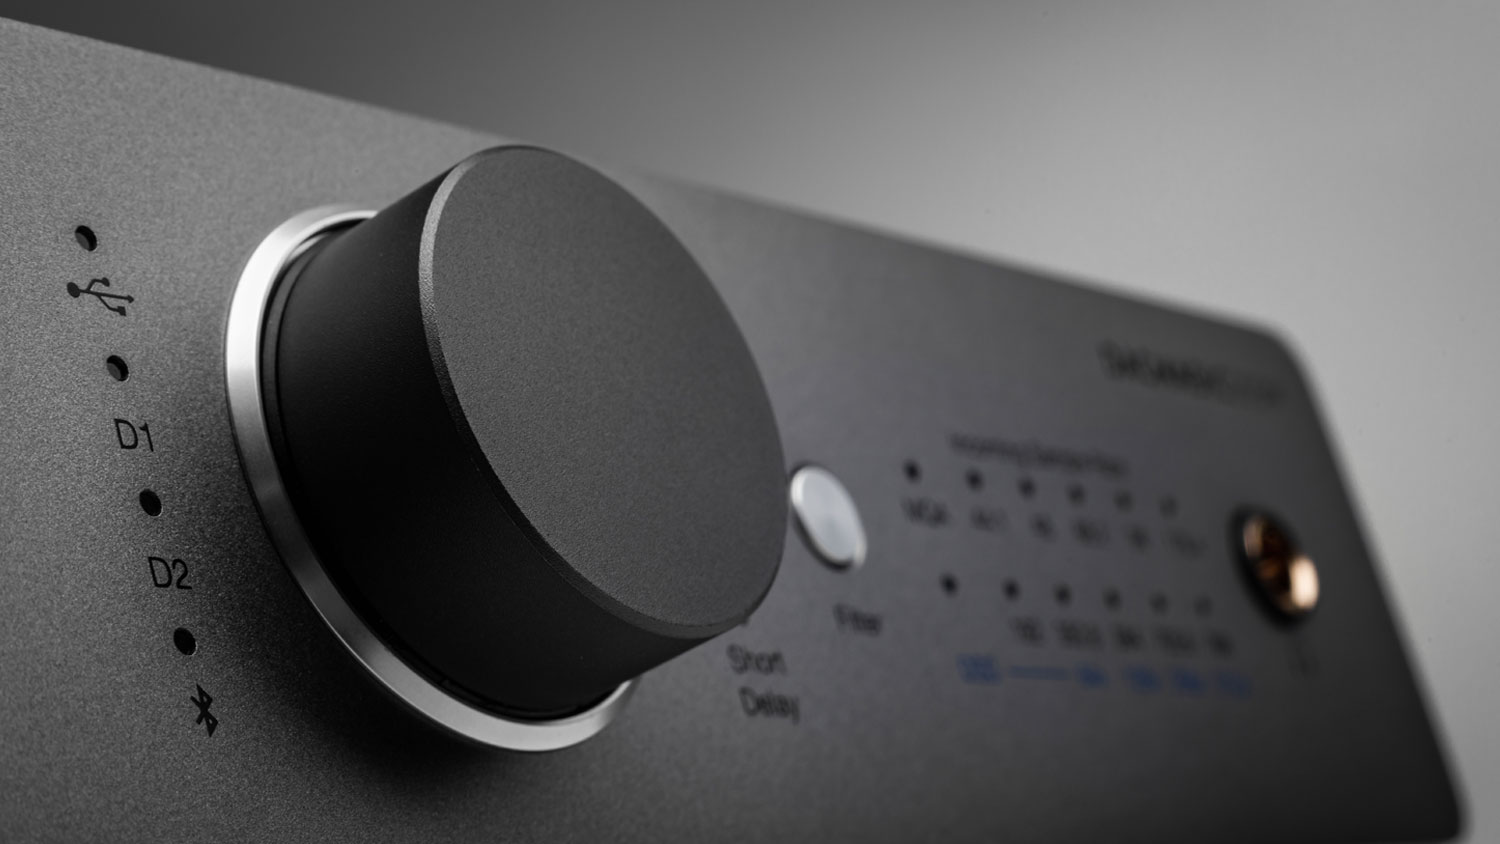 Cambridge Audio DacMagic 200M (Image Credit: Cambridge Audio)